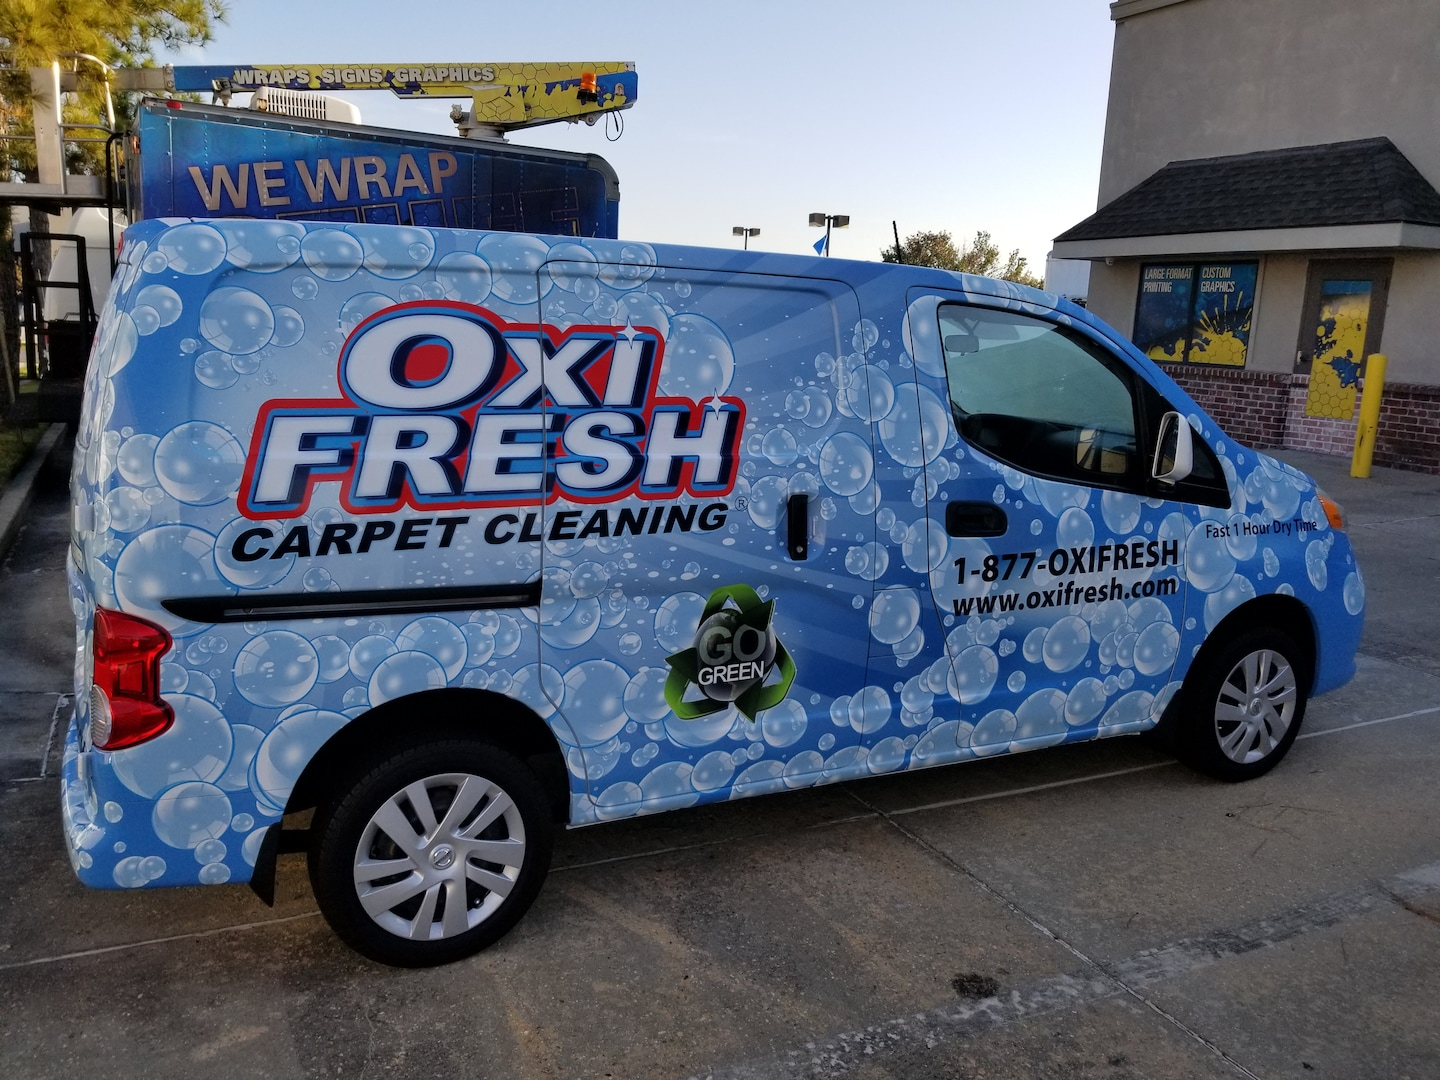 Oxi Fresh Carpet Cleaning of Baton Rouge